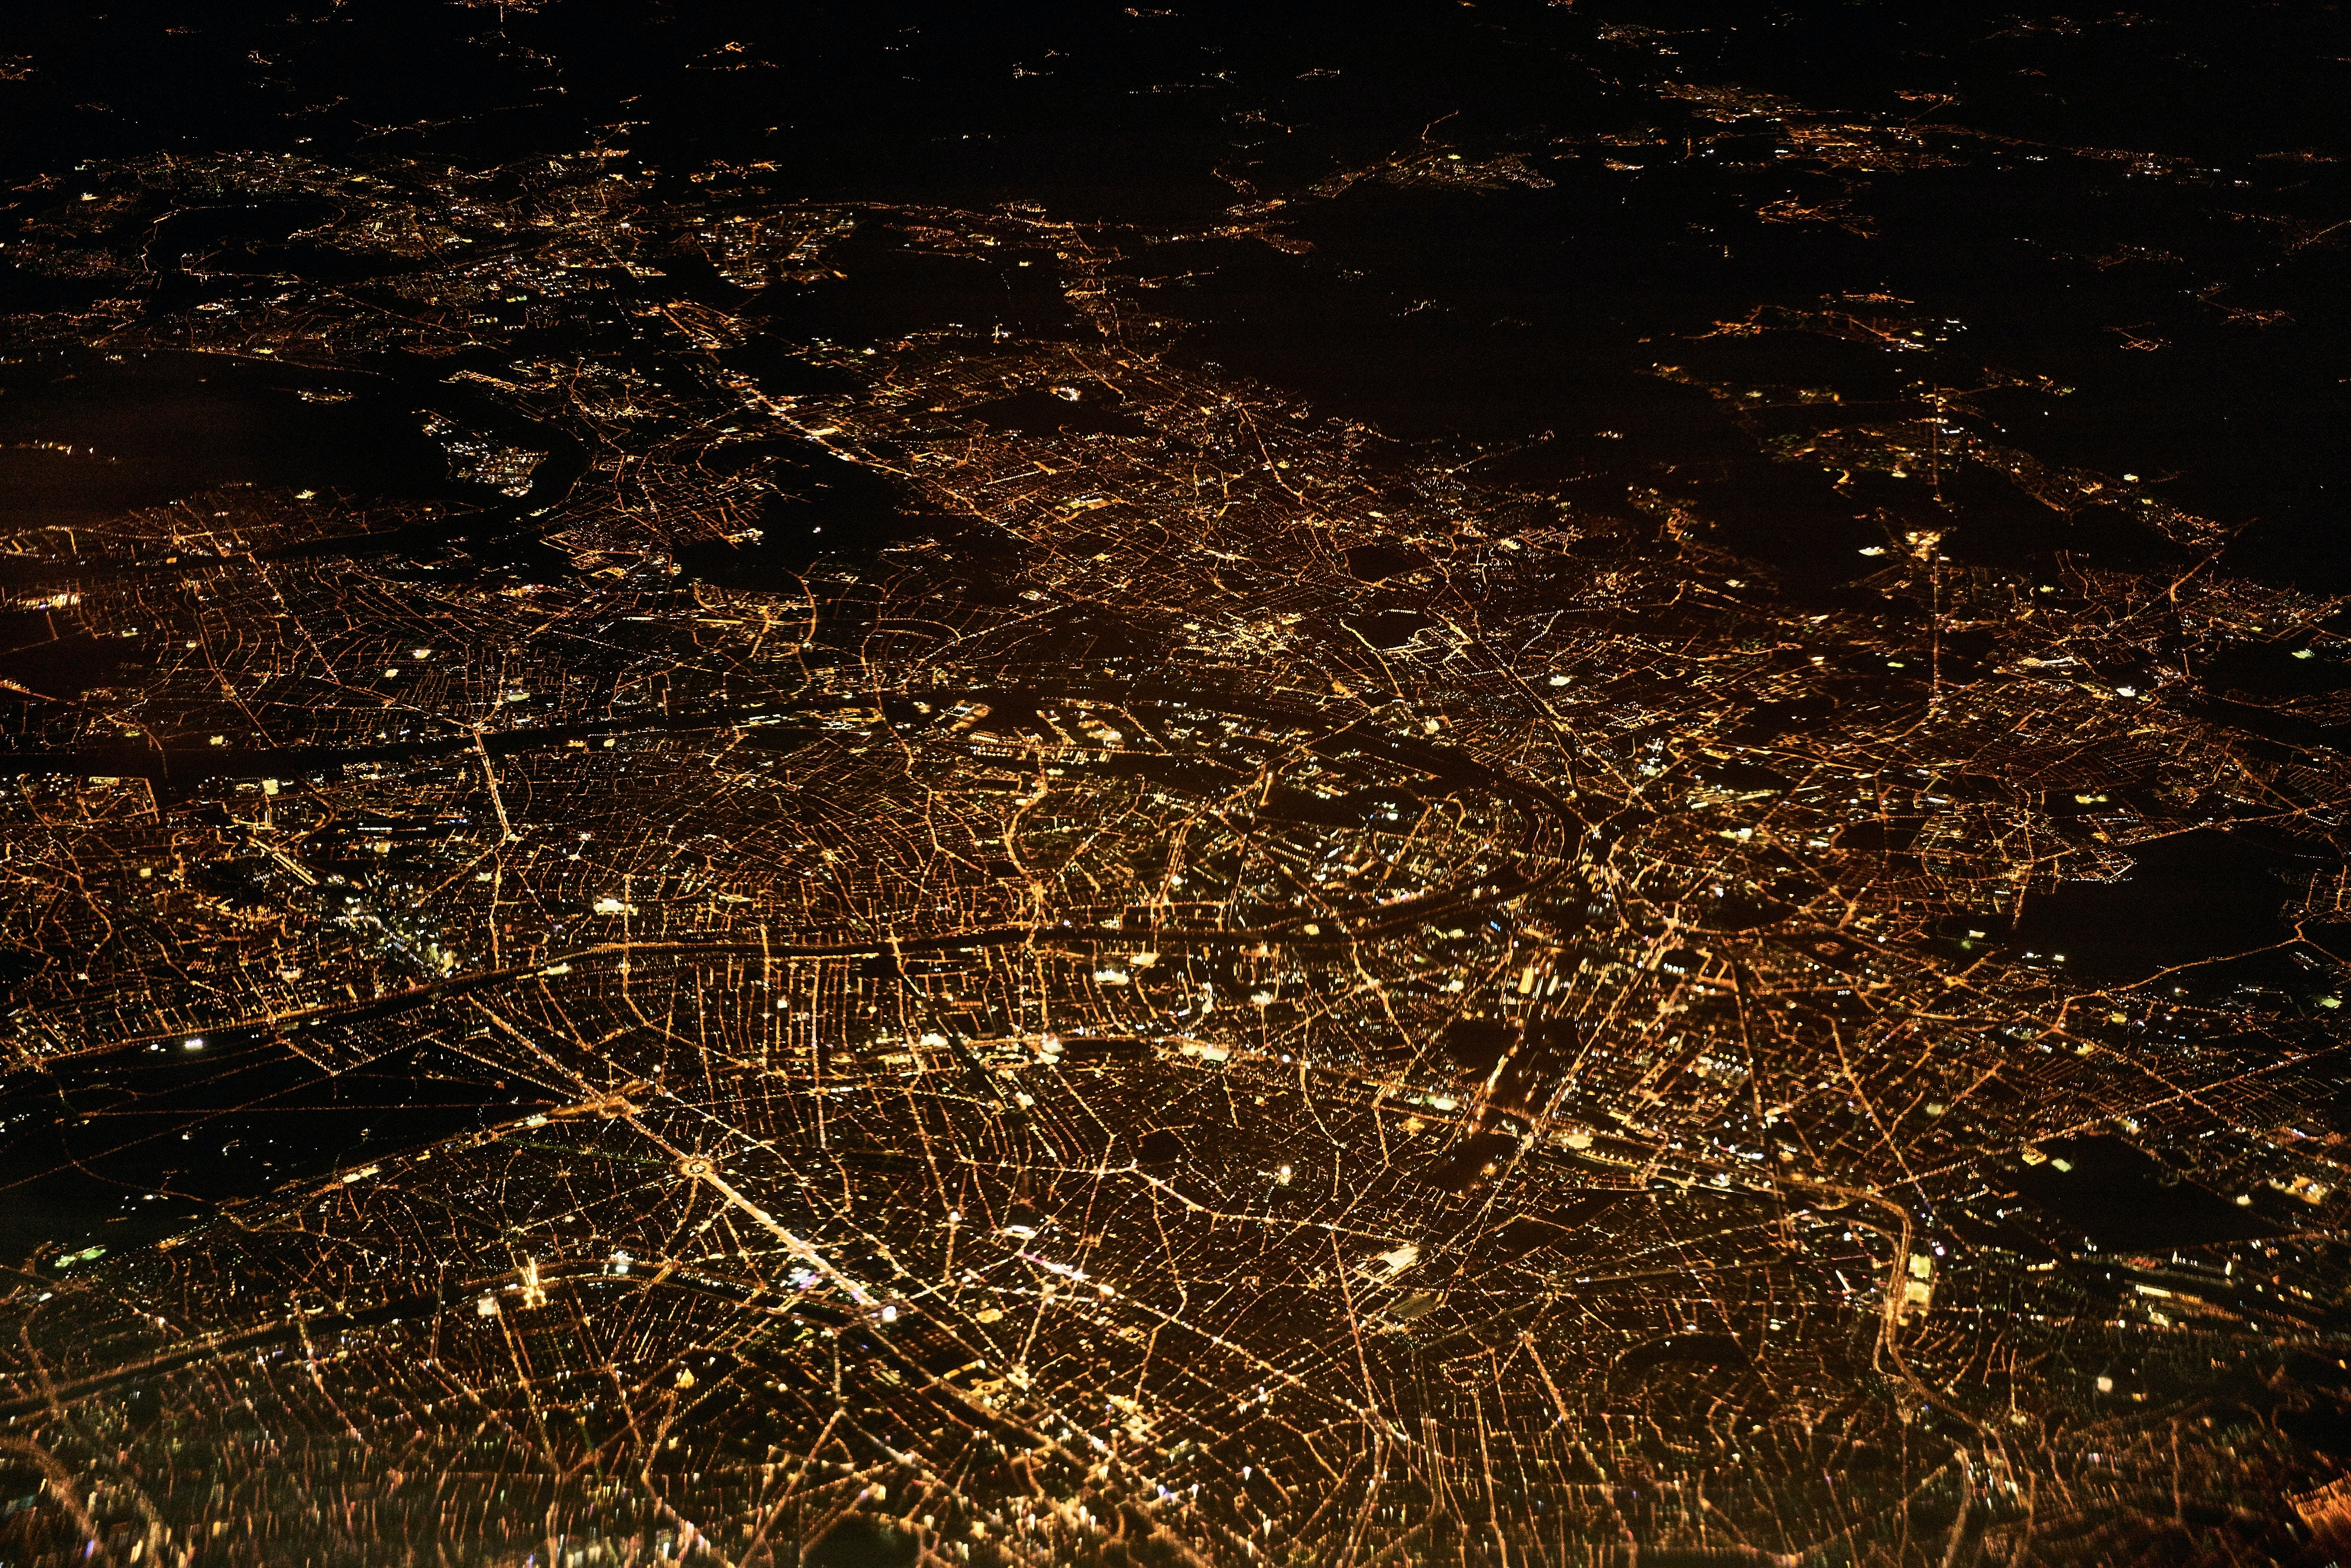 The cityscape of Paris all lit up at nighttime from a plane window